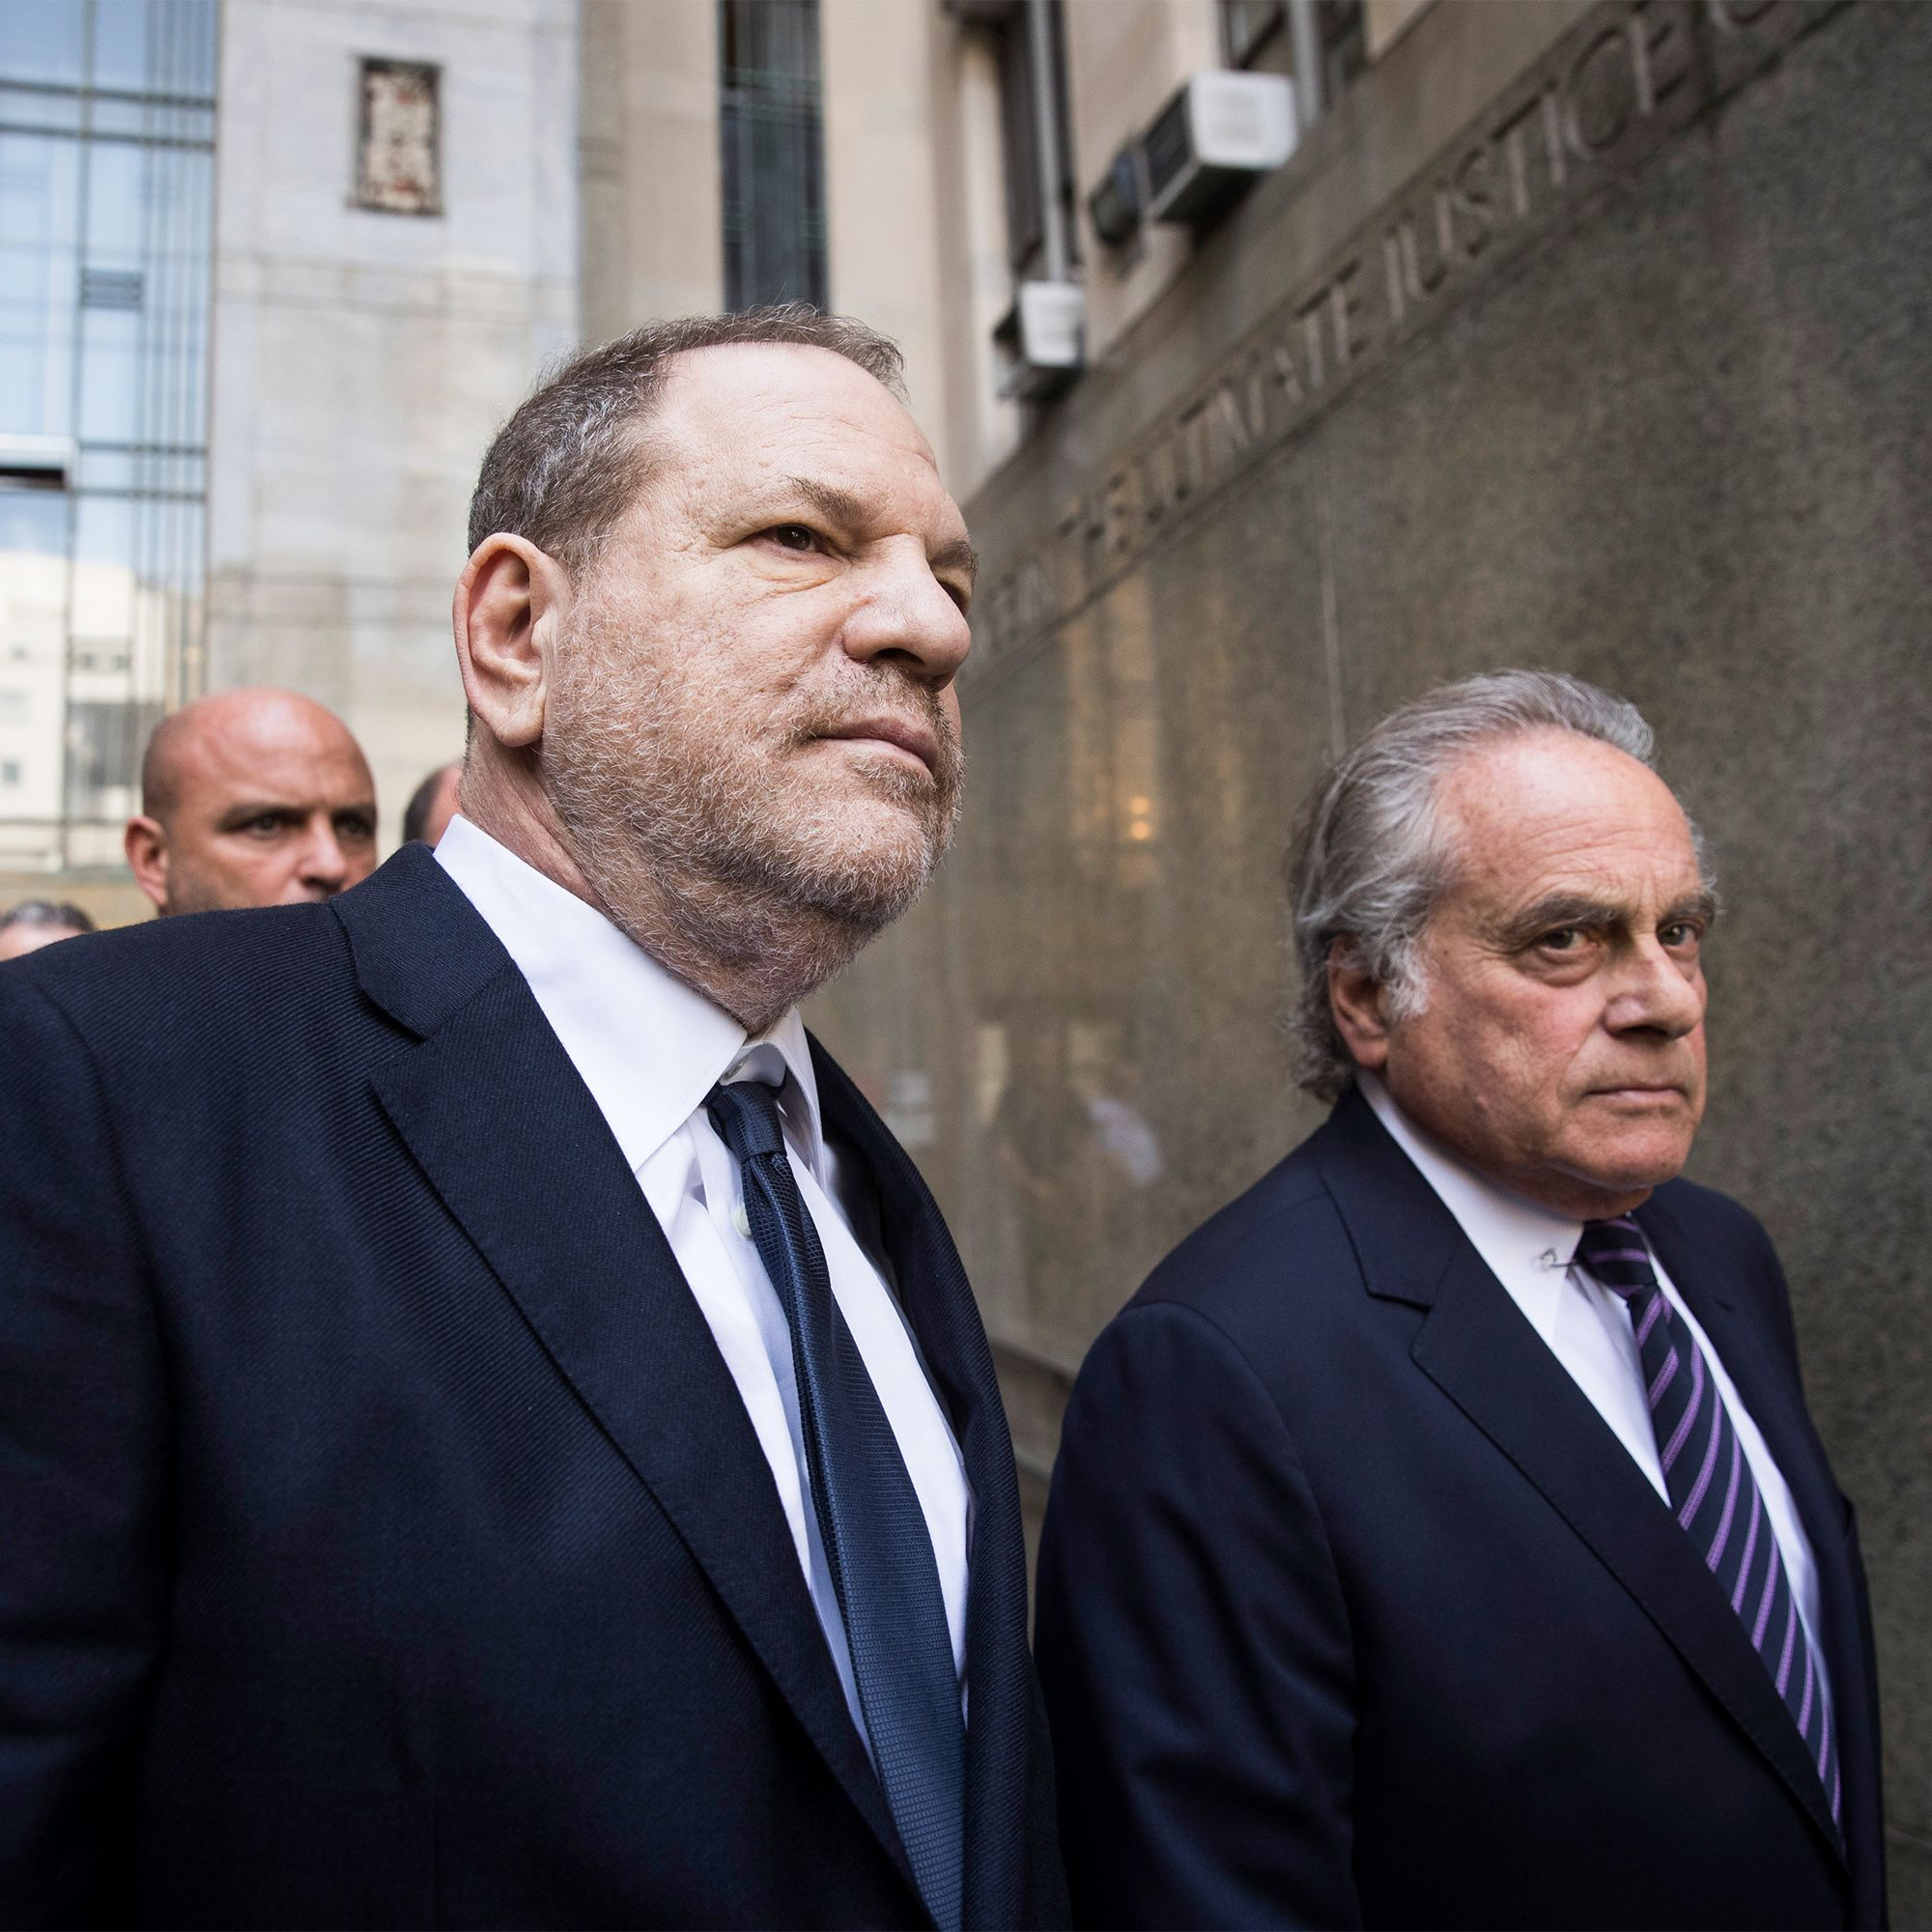 'I'm Not the Morality Police': Inside Benjamin Brafman's Defense of Harvey Weinstein